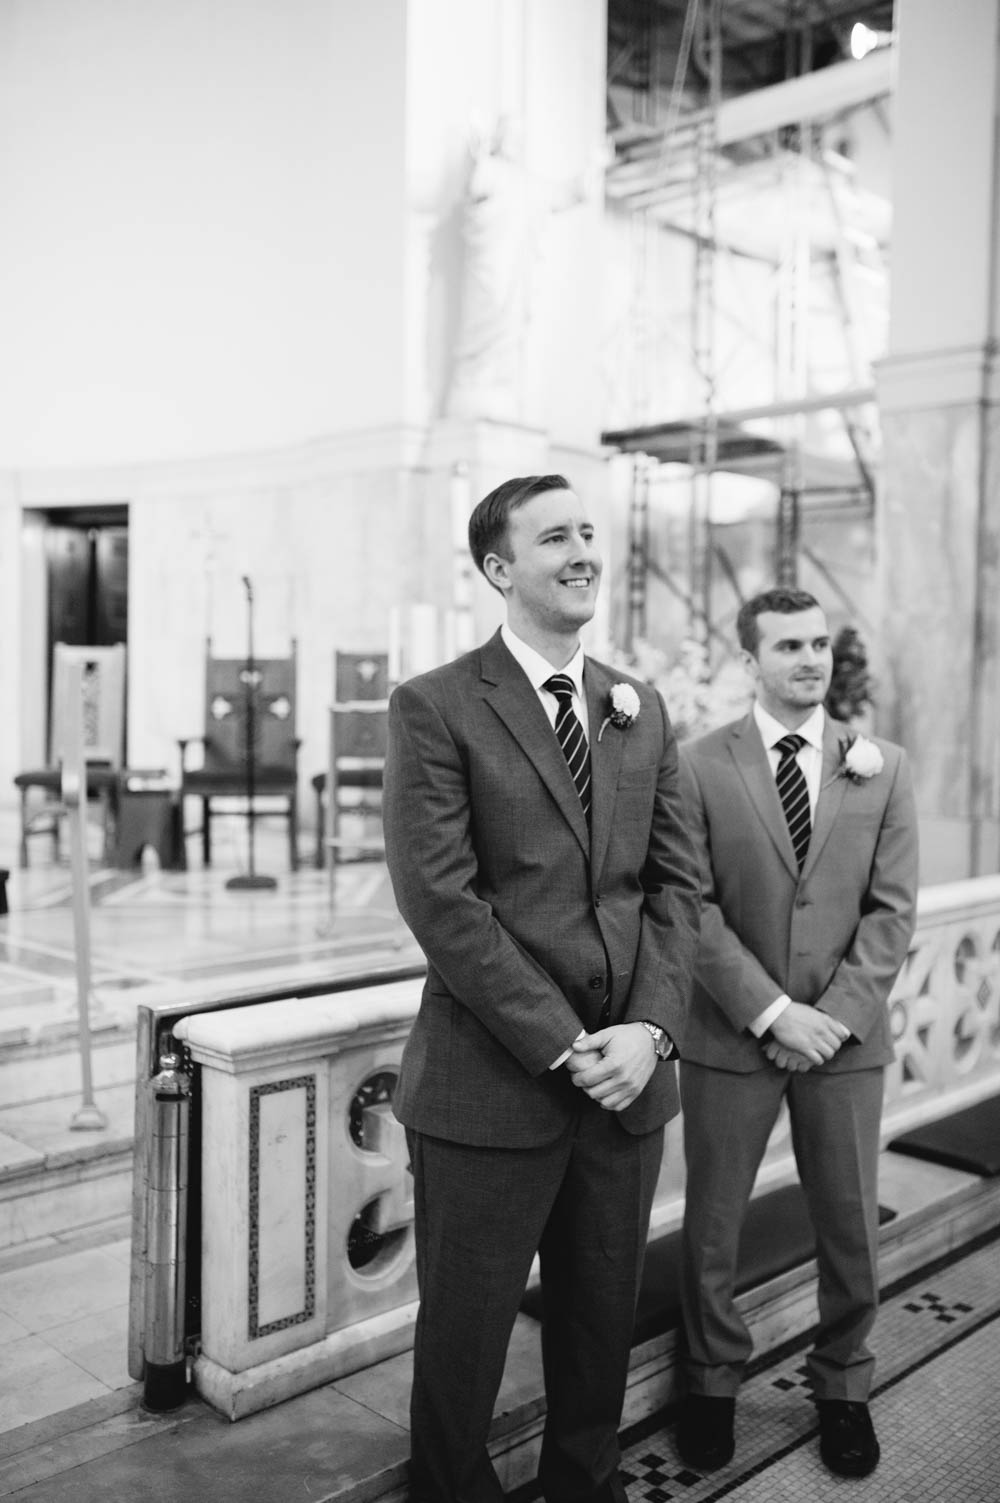 wintergarden-wedding-pittsburgh-88.jpg